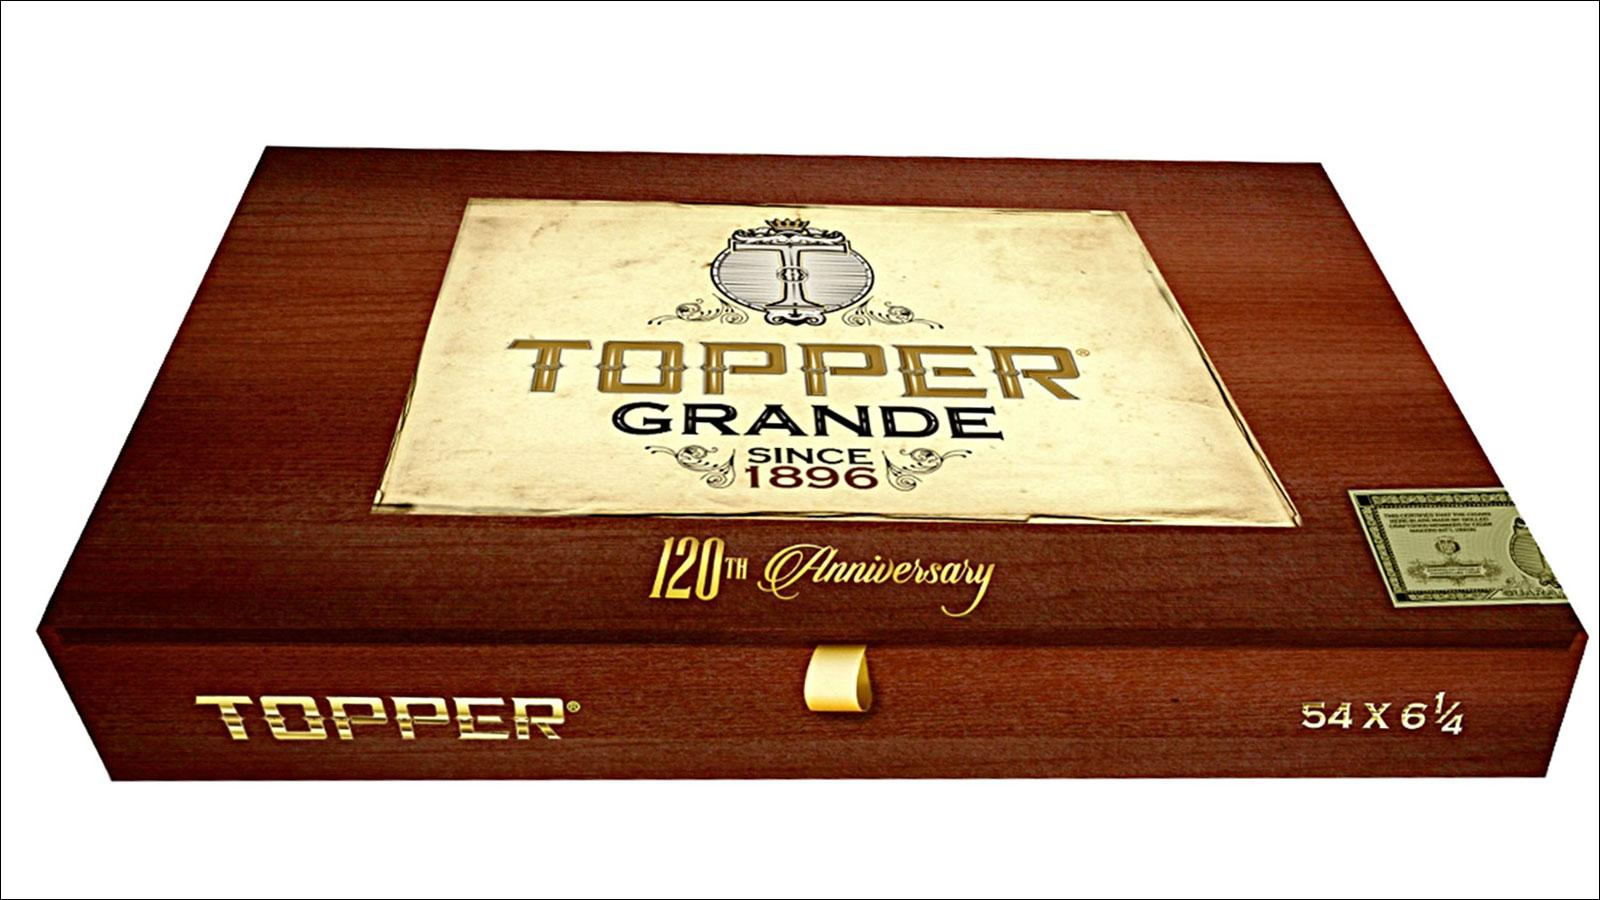 New Topper Cigar Celebrates 120 Years